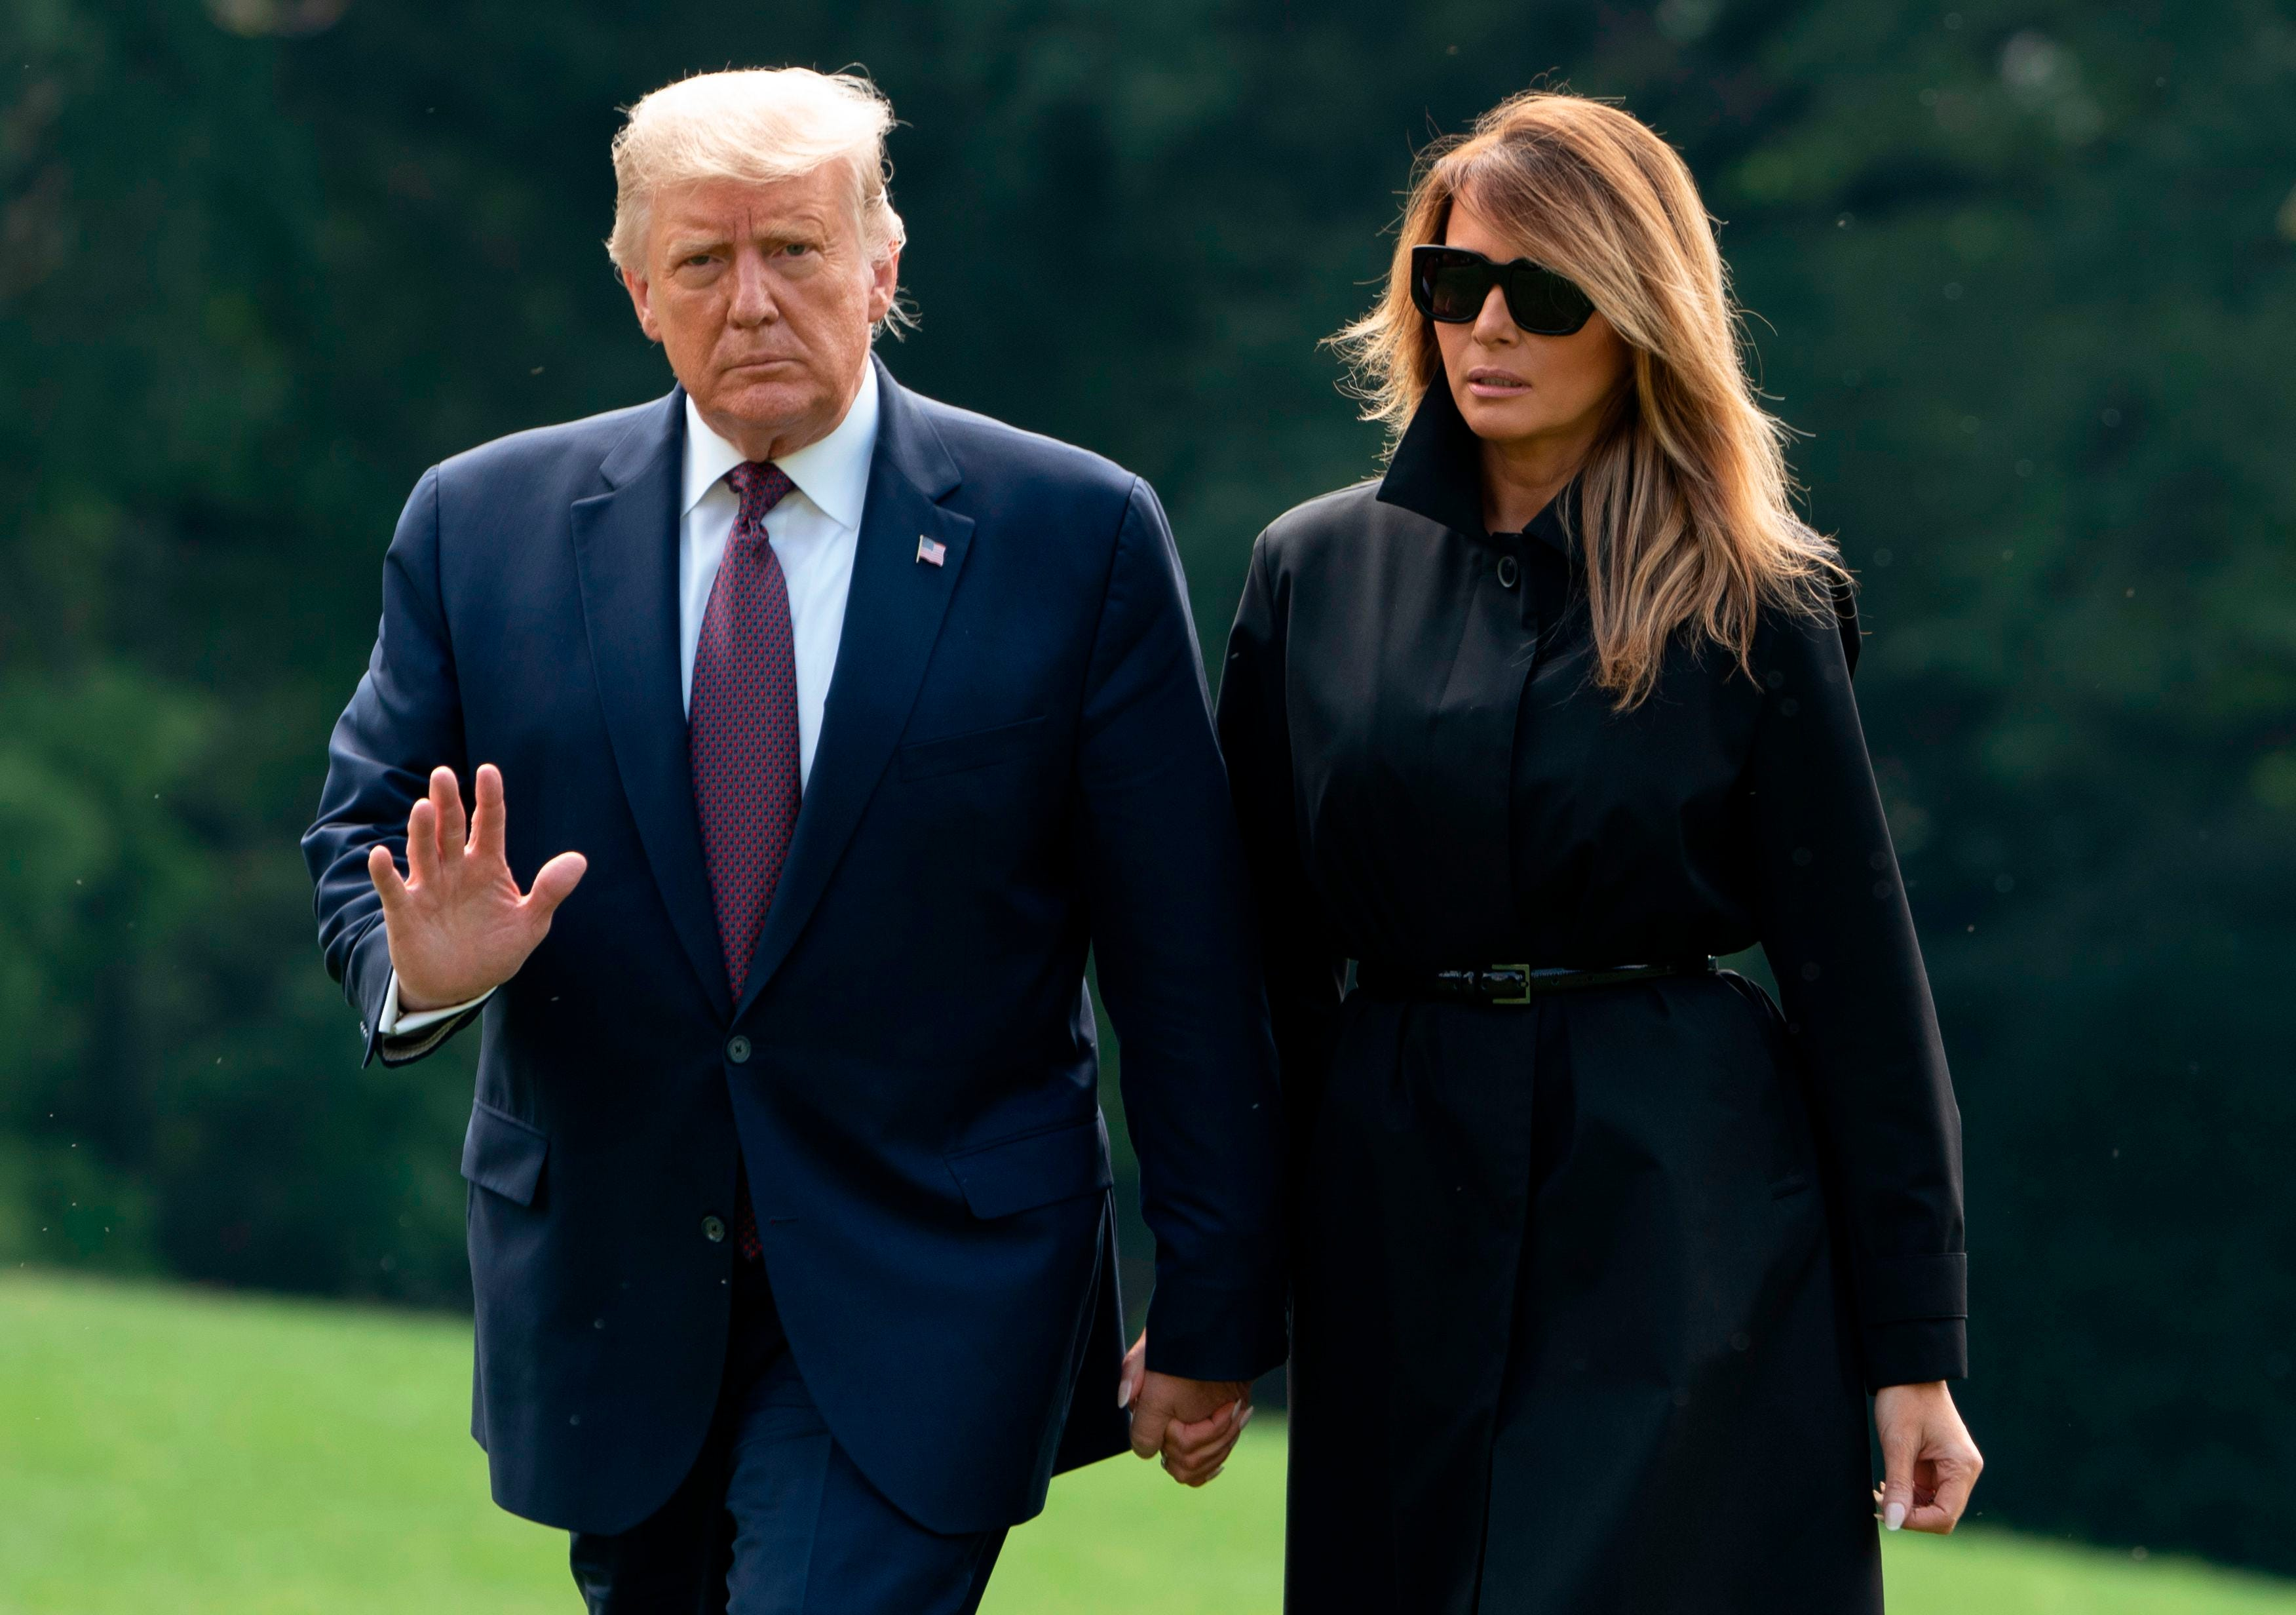 Trump quarantining after White House adviser Hope Hicks tests positive for COVID-19